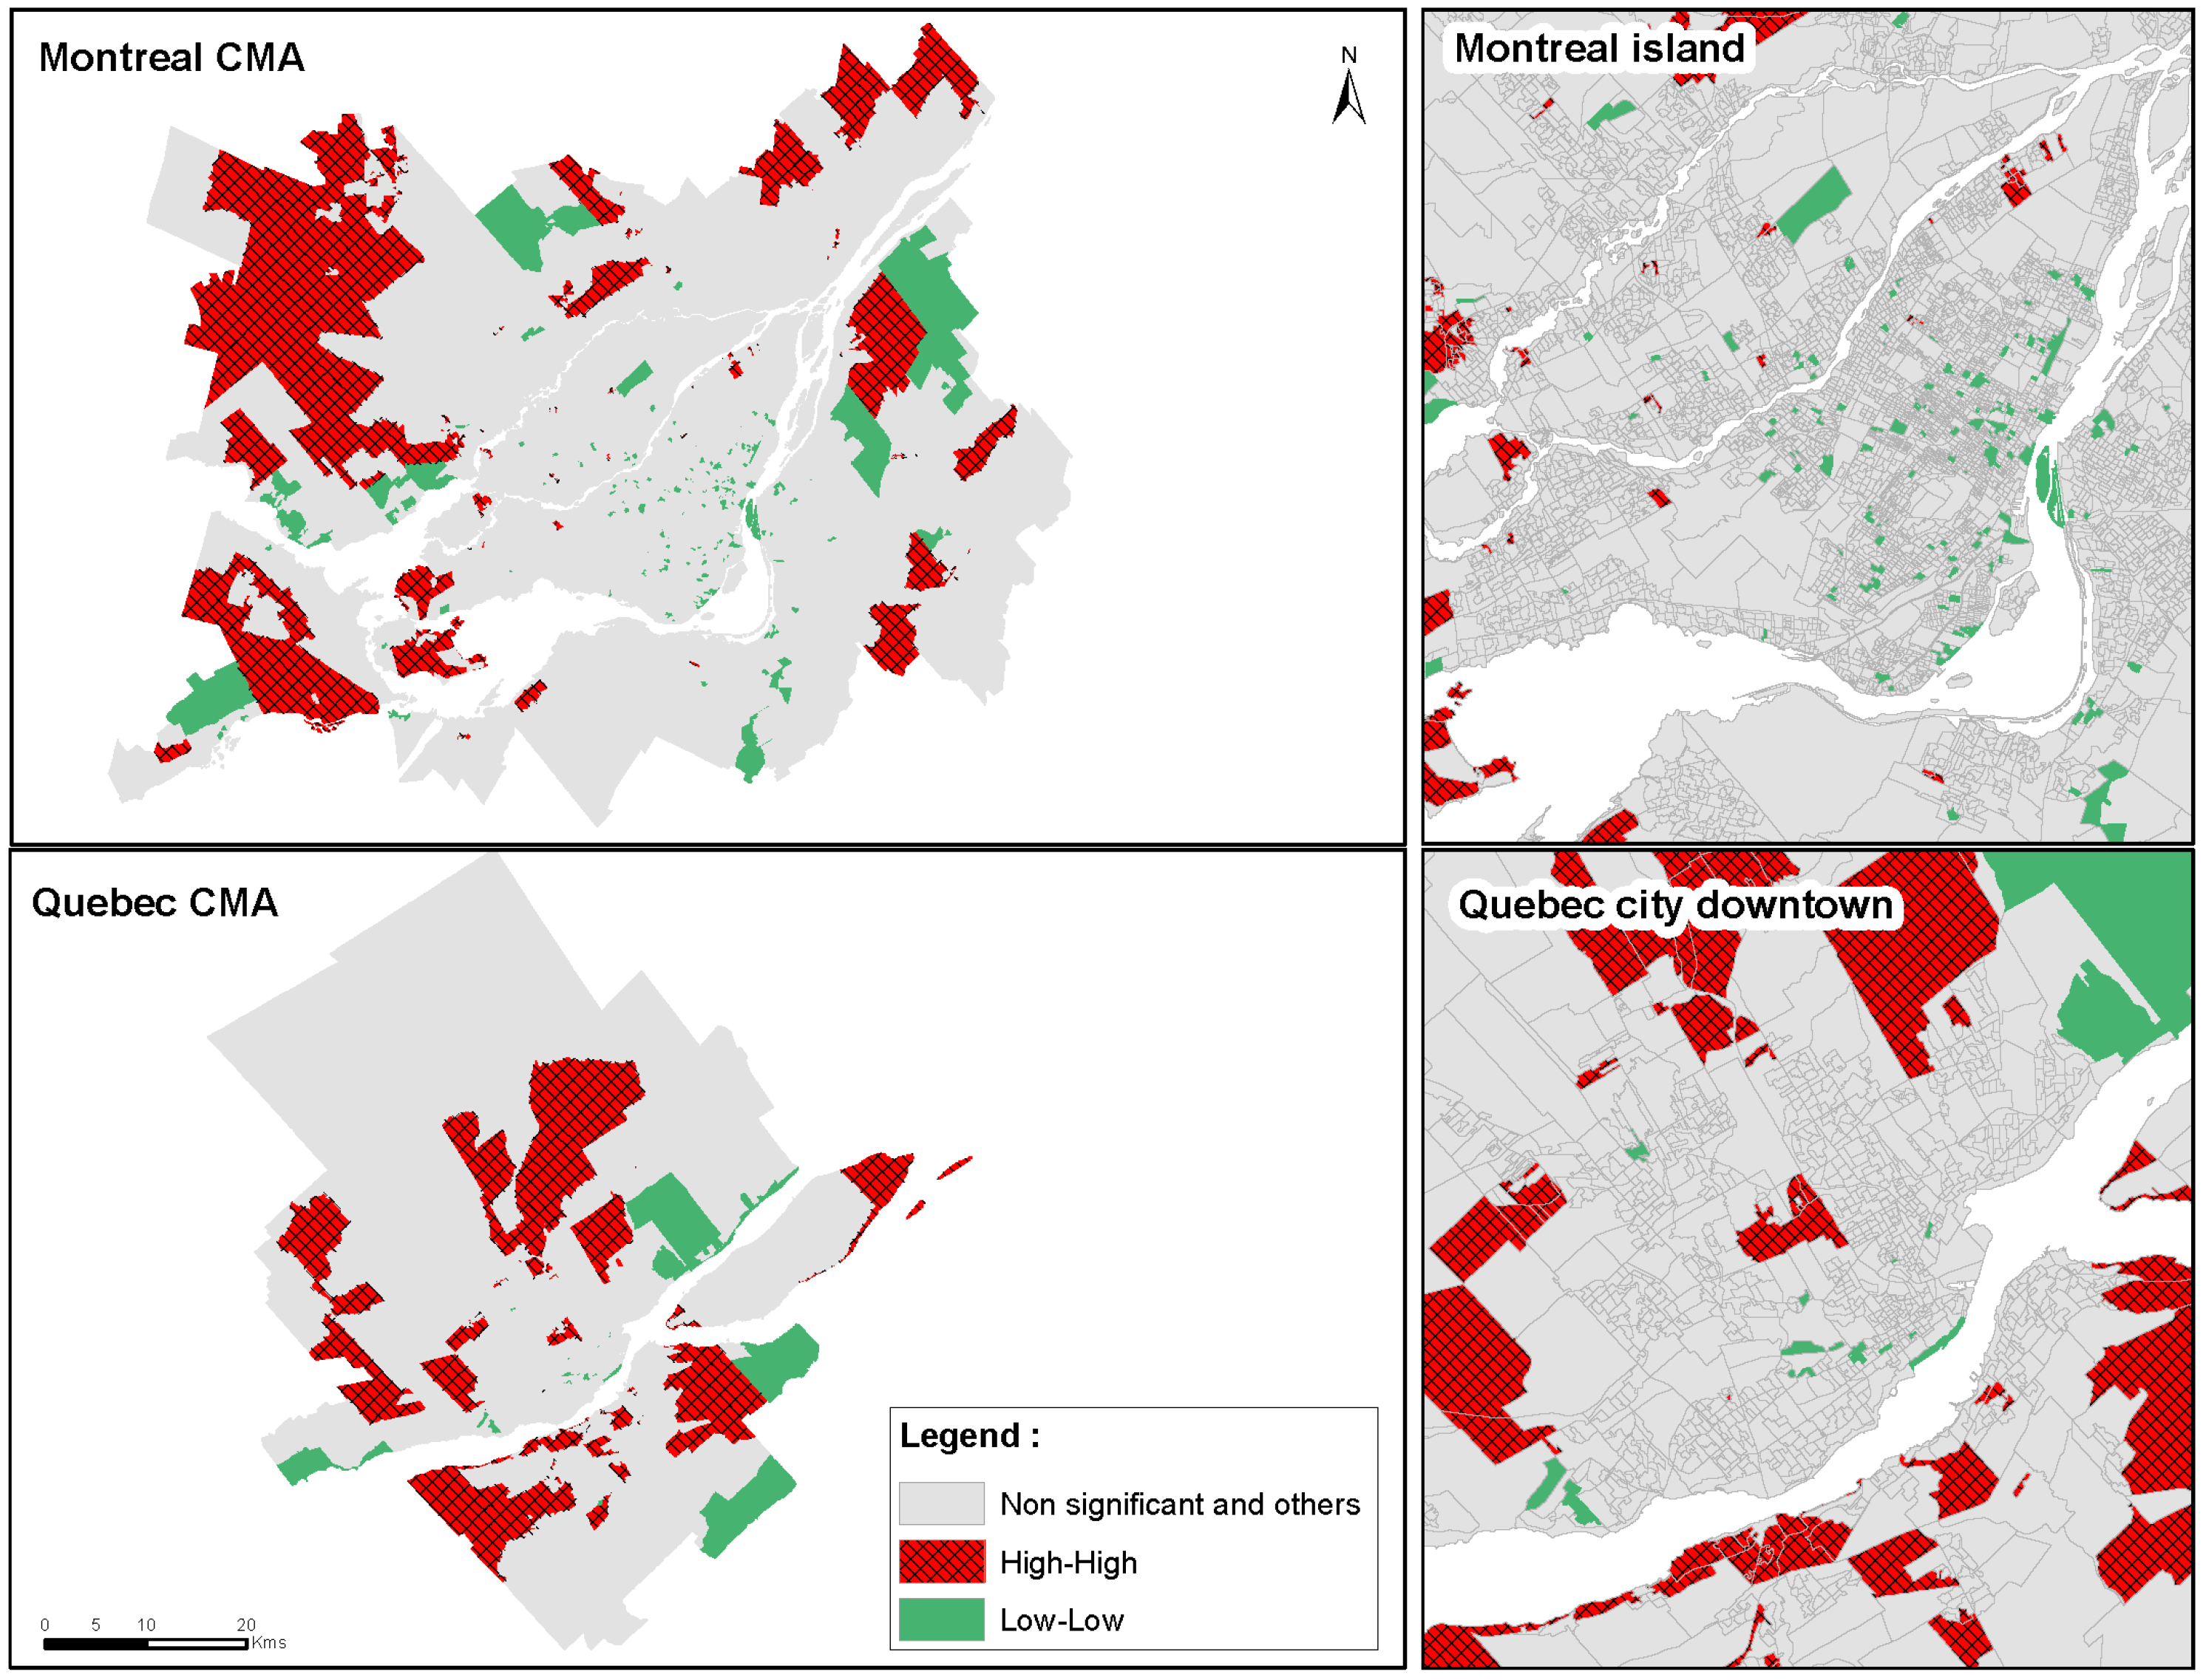 IJERPH | Free Full-Text | Type and Proximity of Green Spaces Are